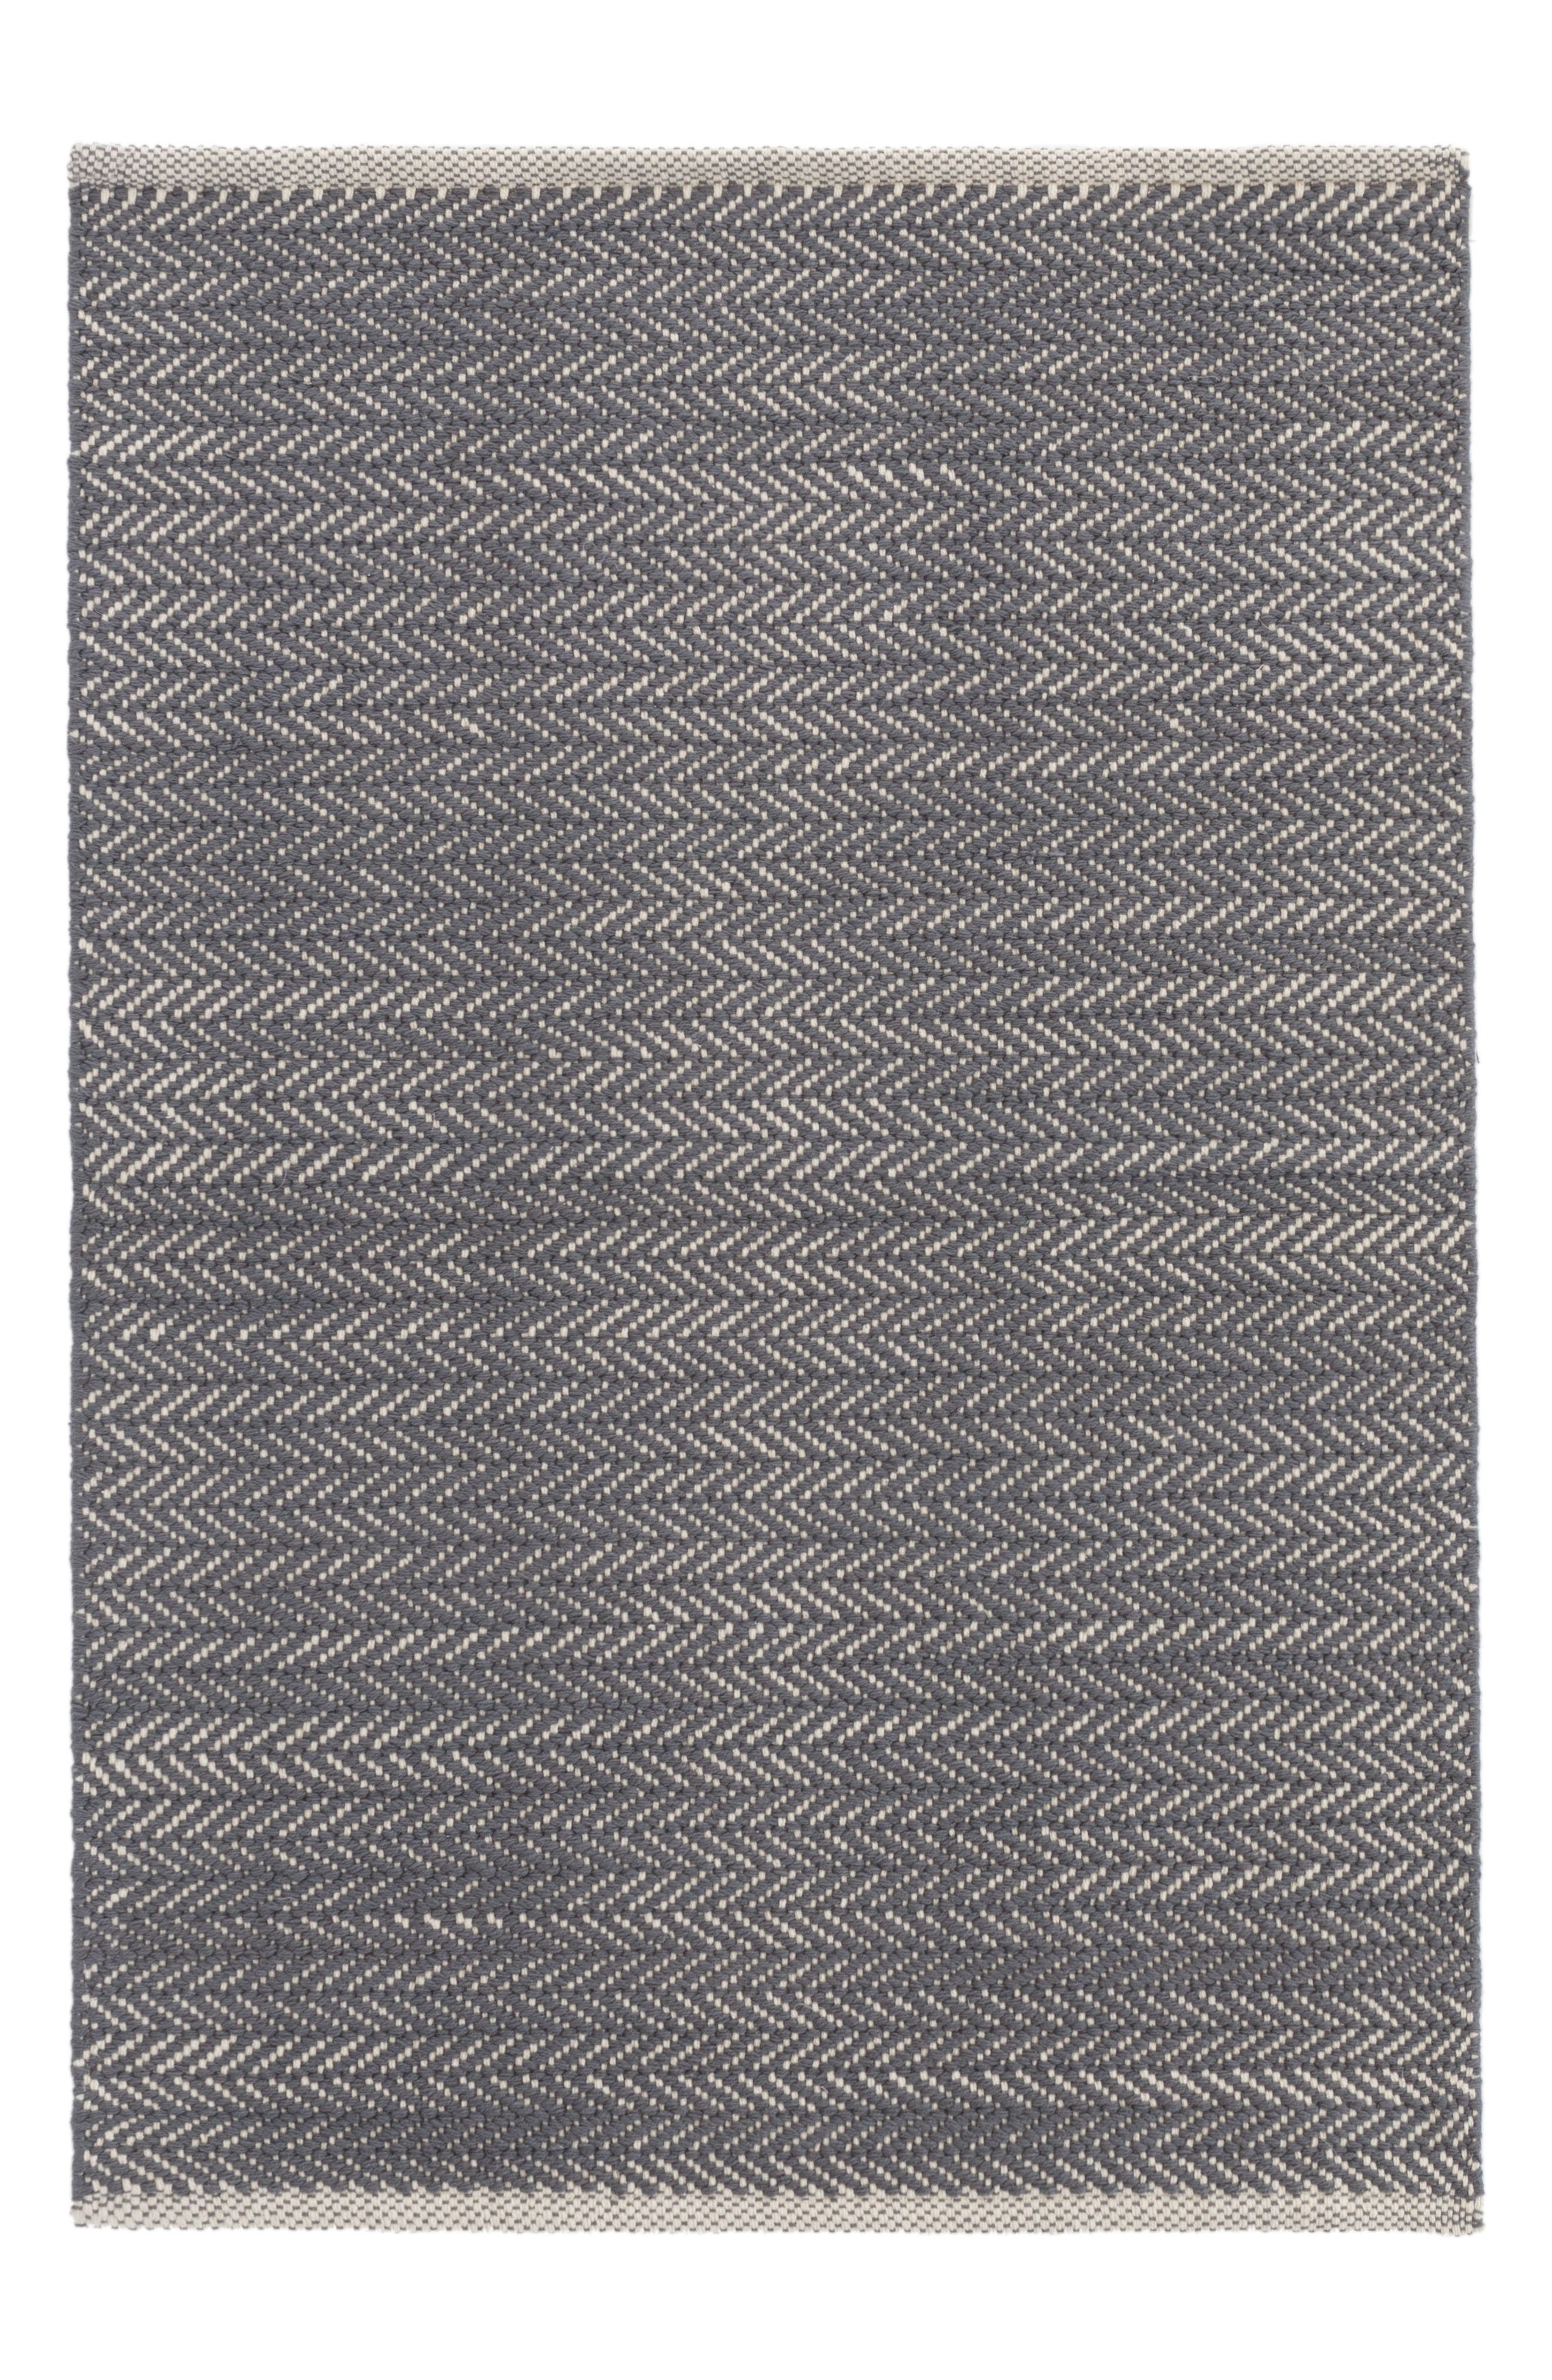 Herringbone Rug,                             Main thumbnail 1, color,                             Blue